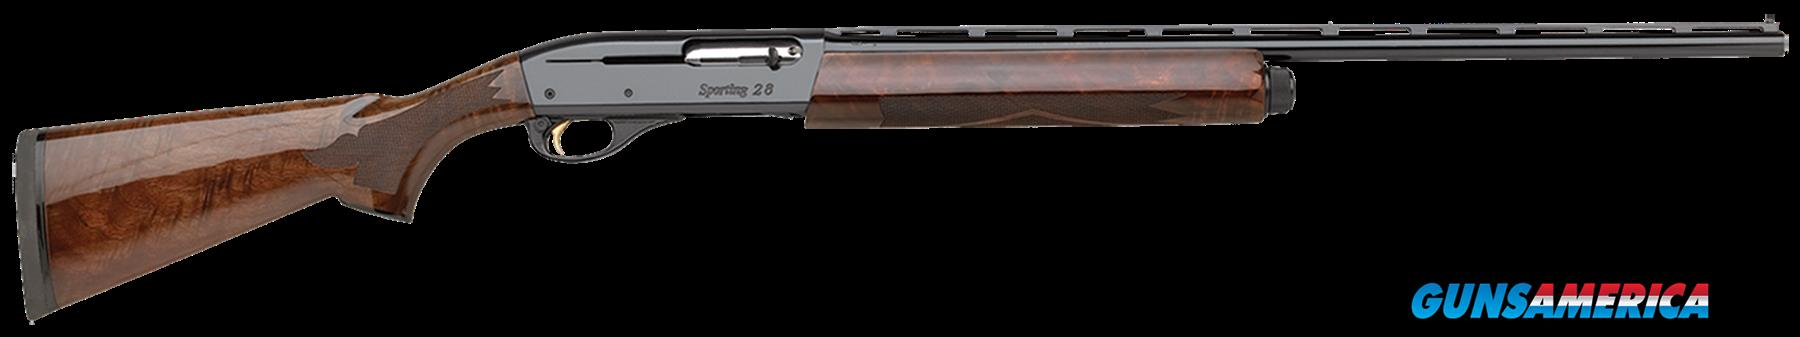 "Remington Firearms 25333 1100 Classic Trap Semi-Automatic 12 Gauge 30"" 2.75"" Walnut High Gloss Stk  Guns > Shotguns > Remington Shotguns  > Autoloaders > Trap/Skeet"